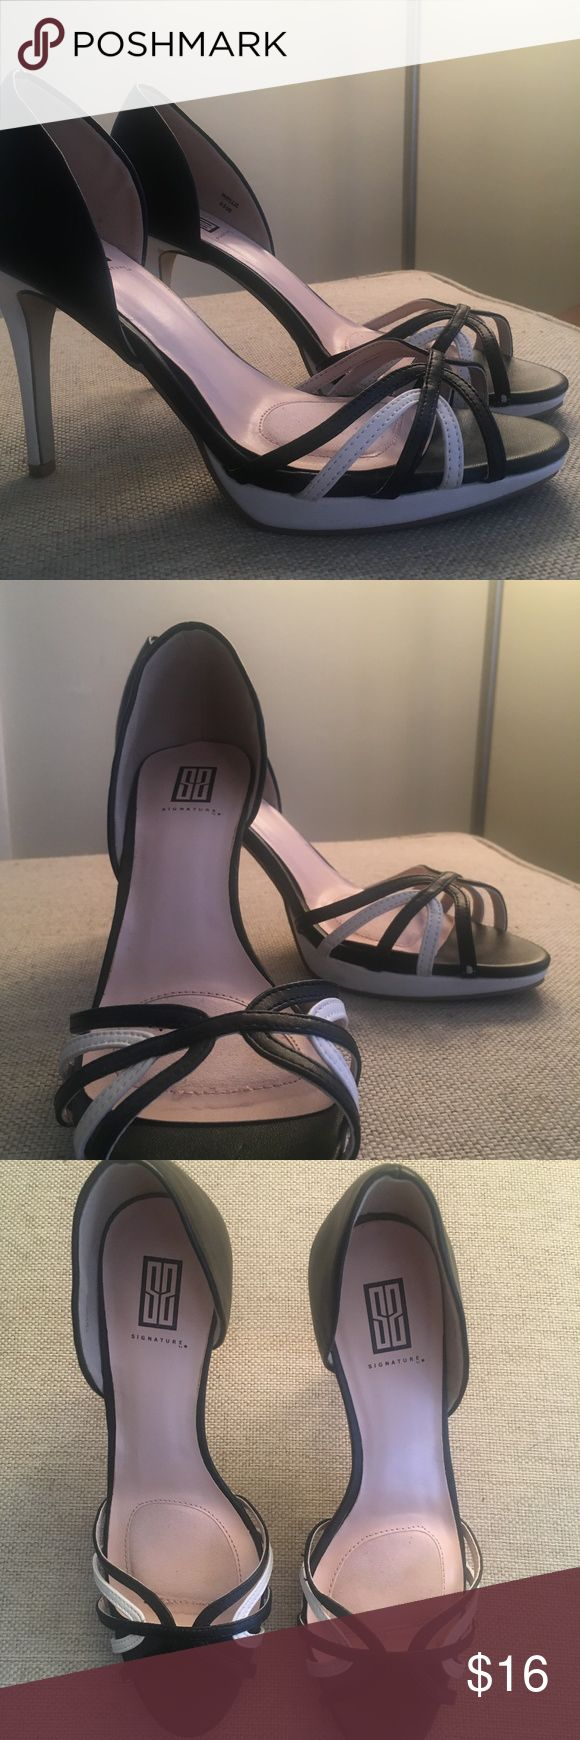 High heel *** PRICE NEGOTIABLE*** These shoes are about 3 1/2 inches tall. Black and white strappy accents on the toe and only worn twice. The bottoms are slightly worn but nothing crazy. Shoes Heels